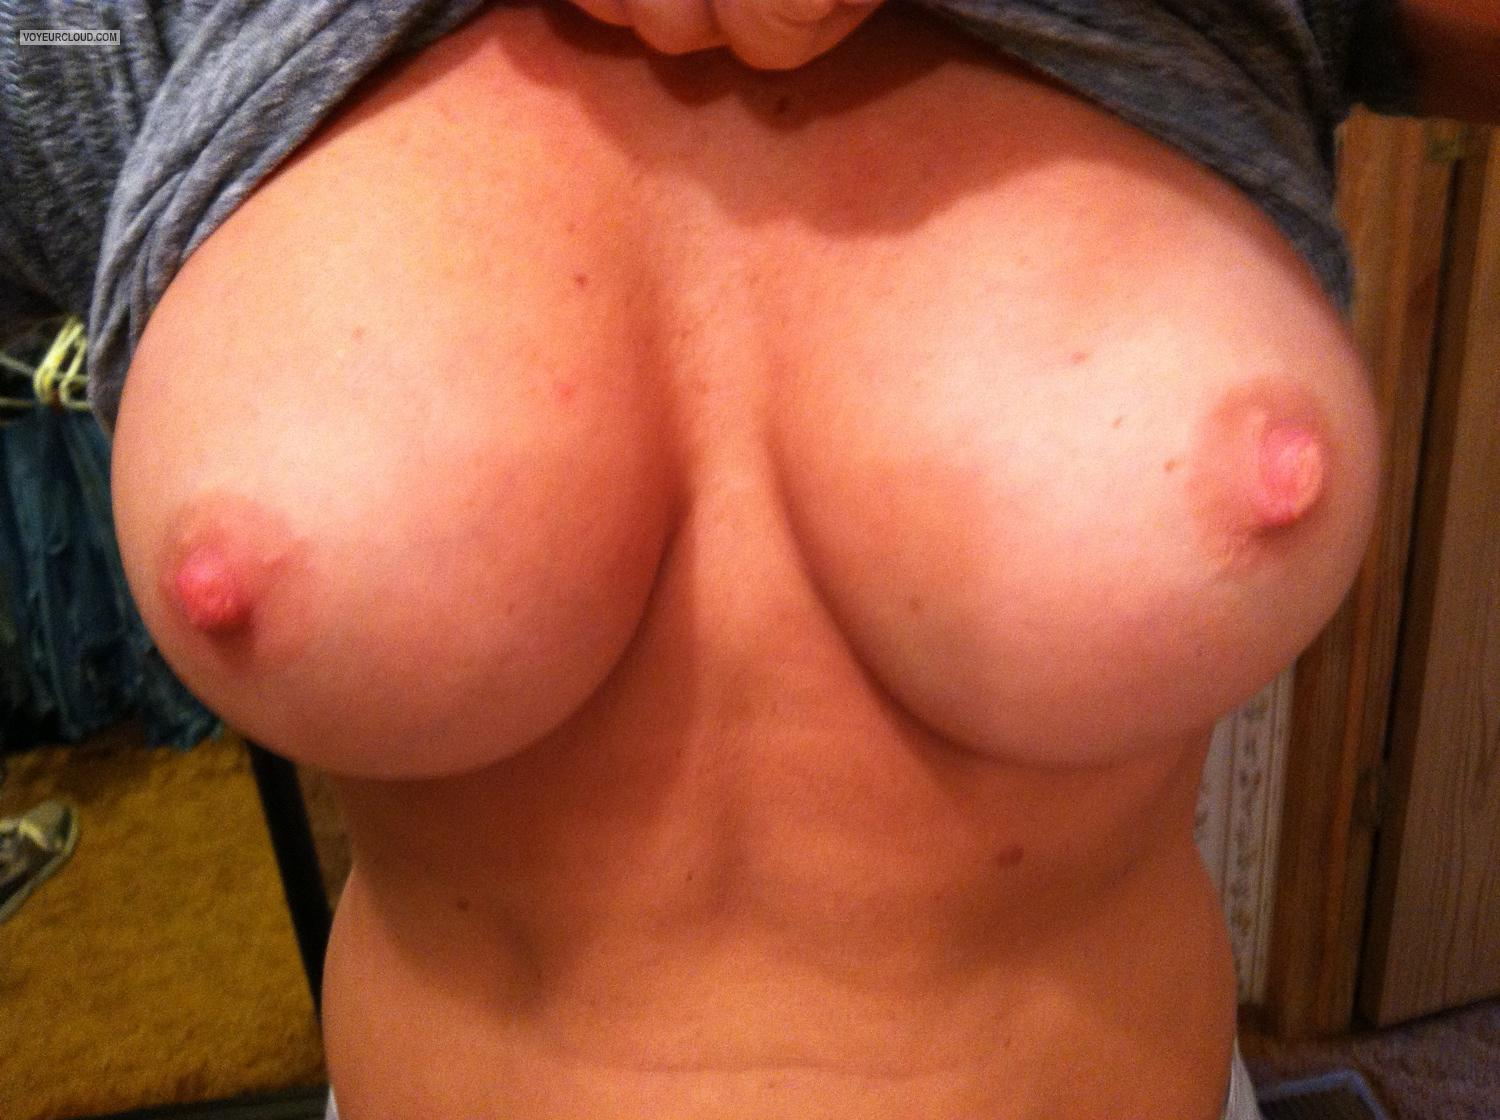 Most Recent Mobile Big Tits Porn and Free Mobile -